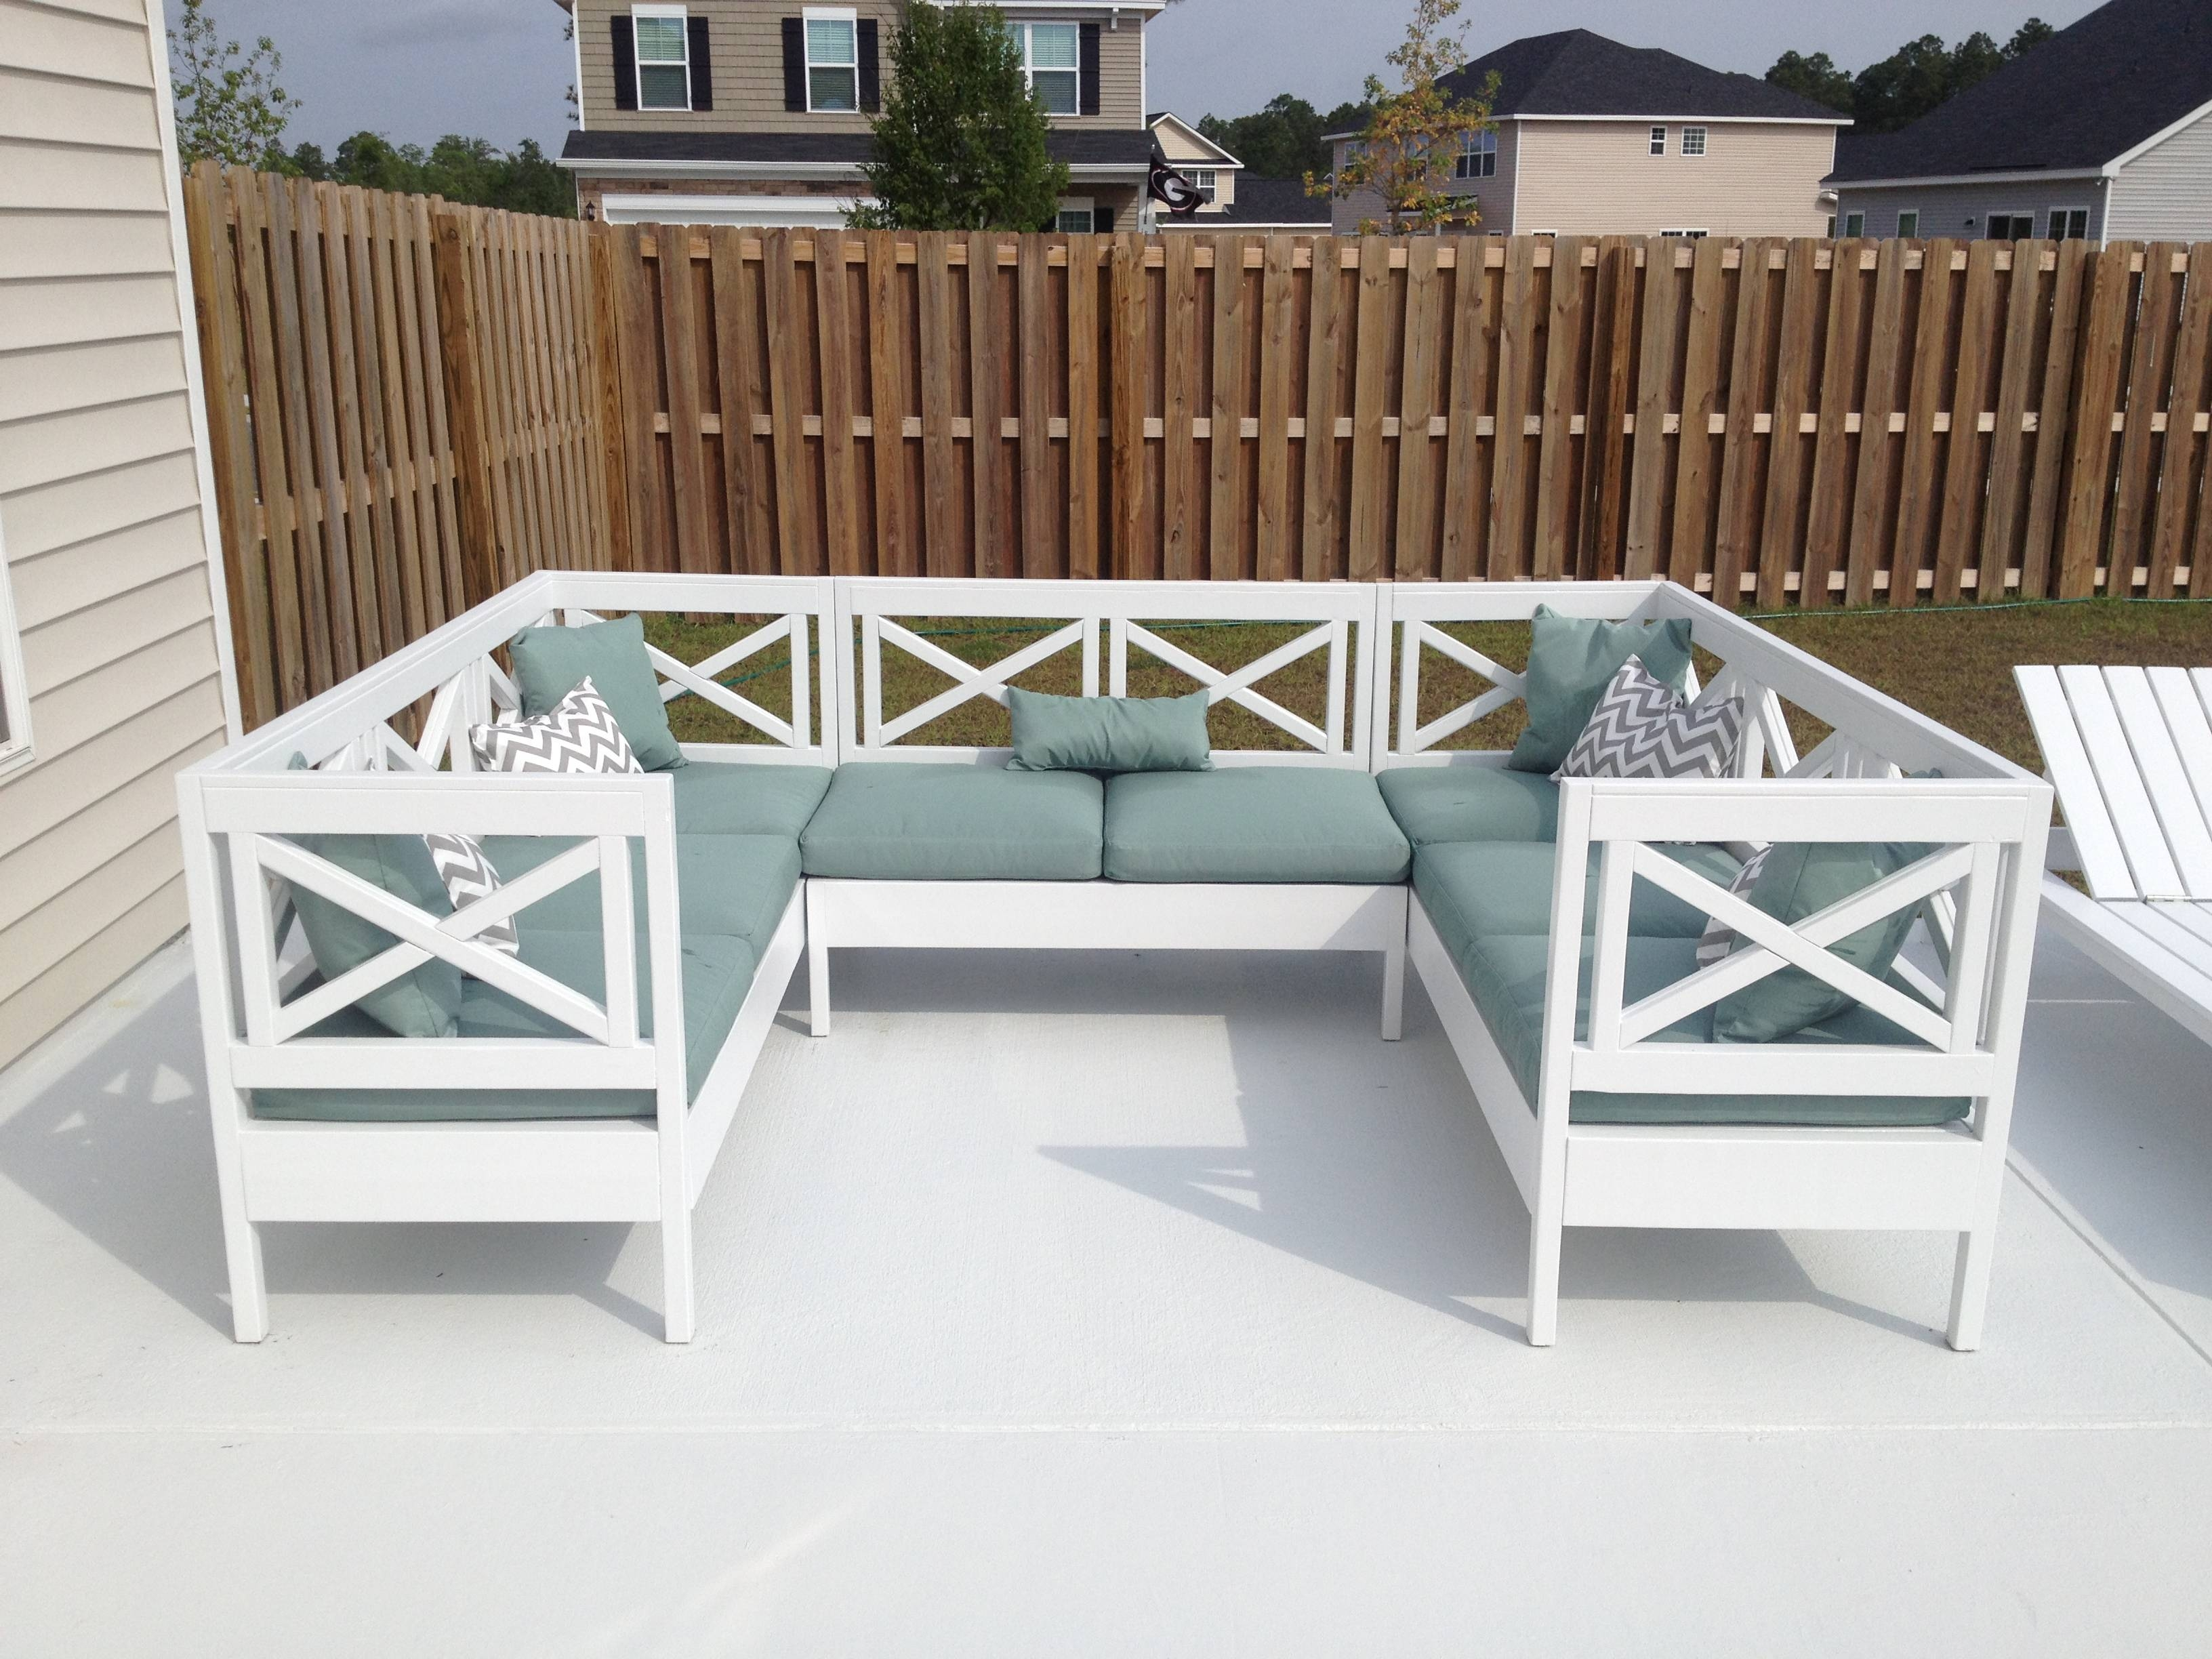 Ana White | Weatherly Outdoor Sectional! - Diy Projects pertaining to Ana White Outdoor Sectional Sofas (Image 12 of 15)